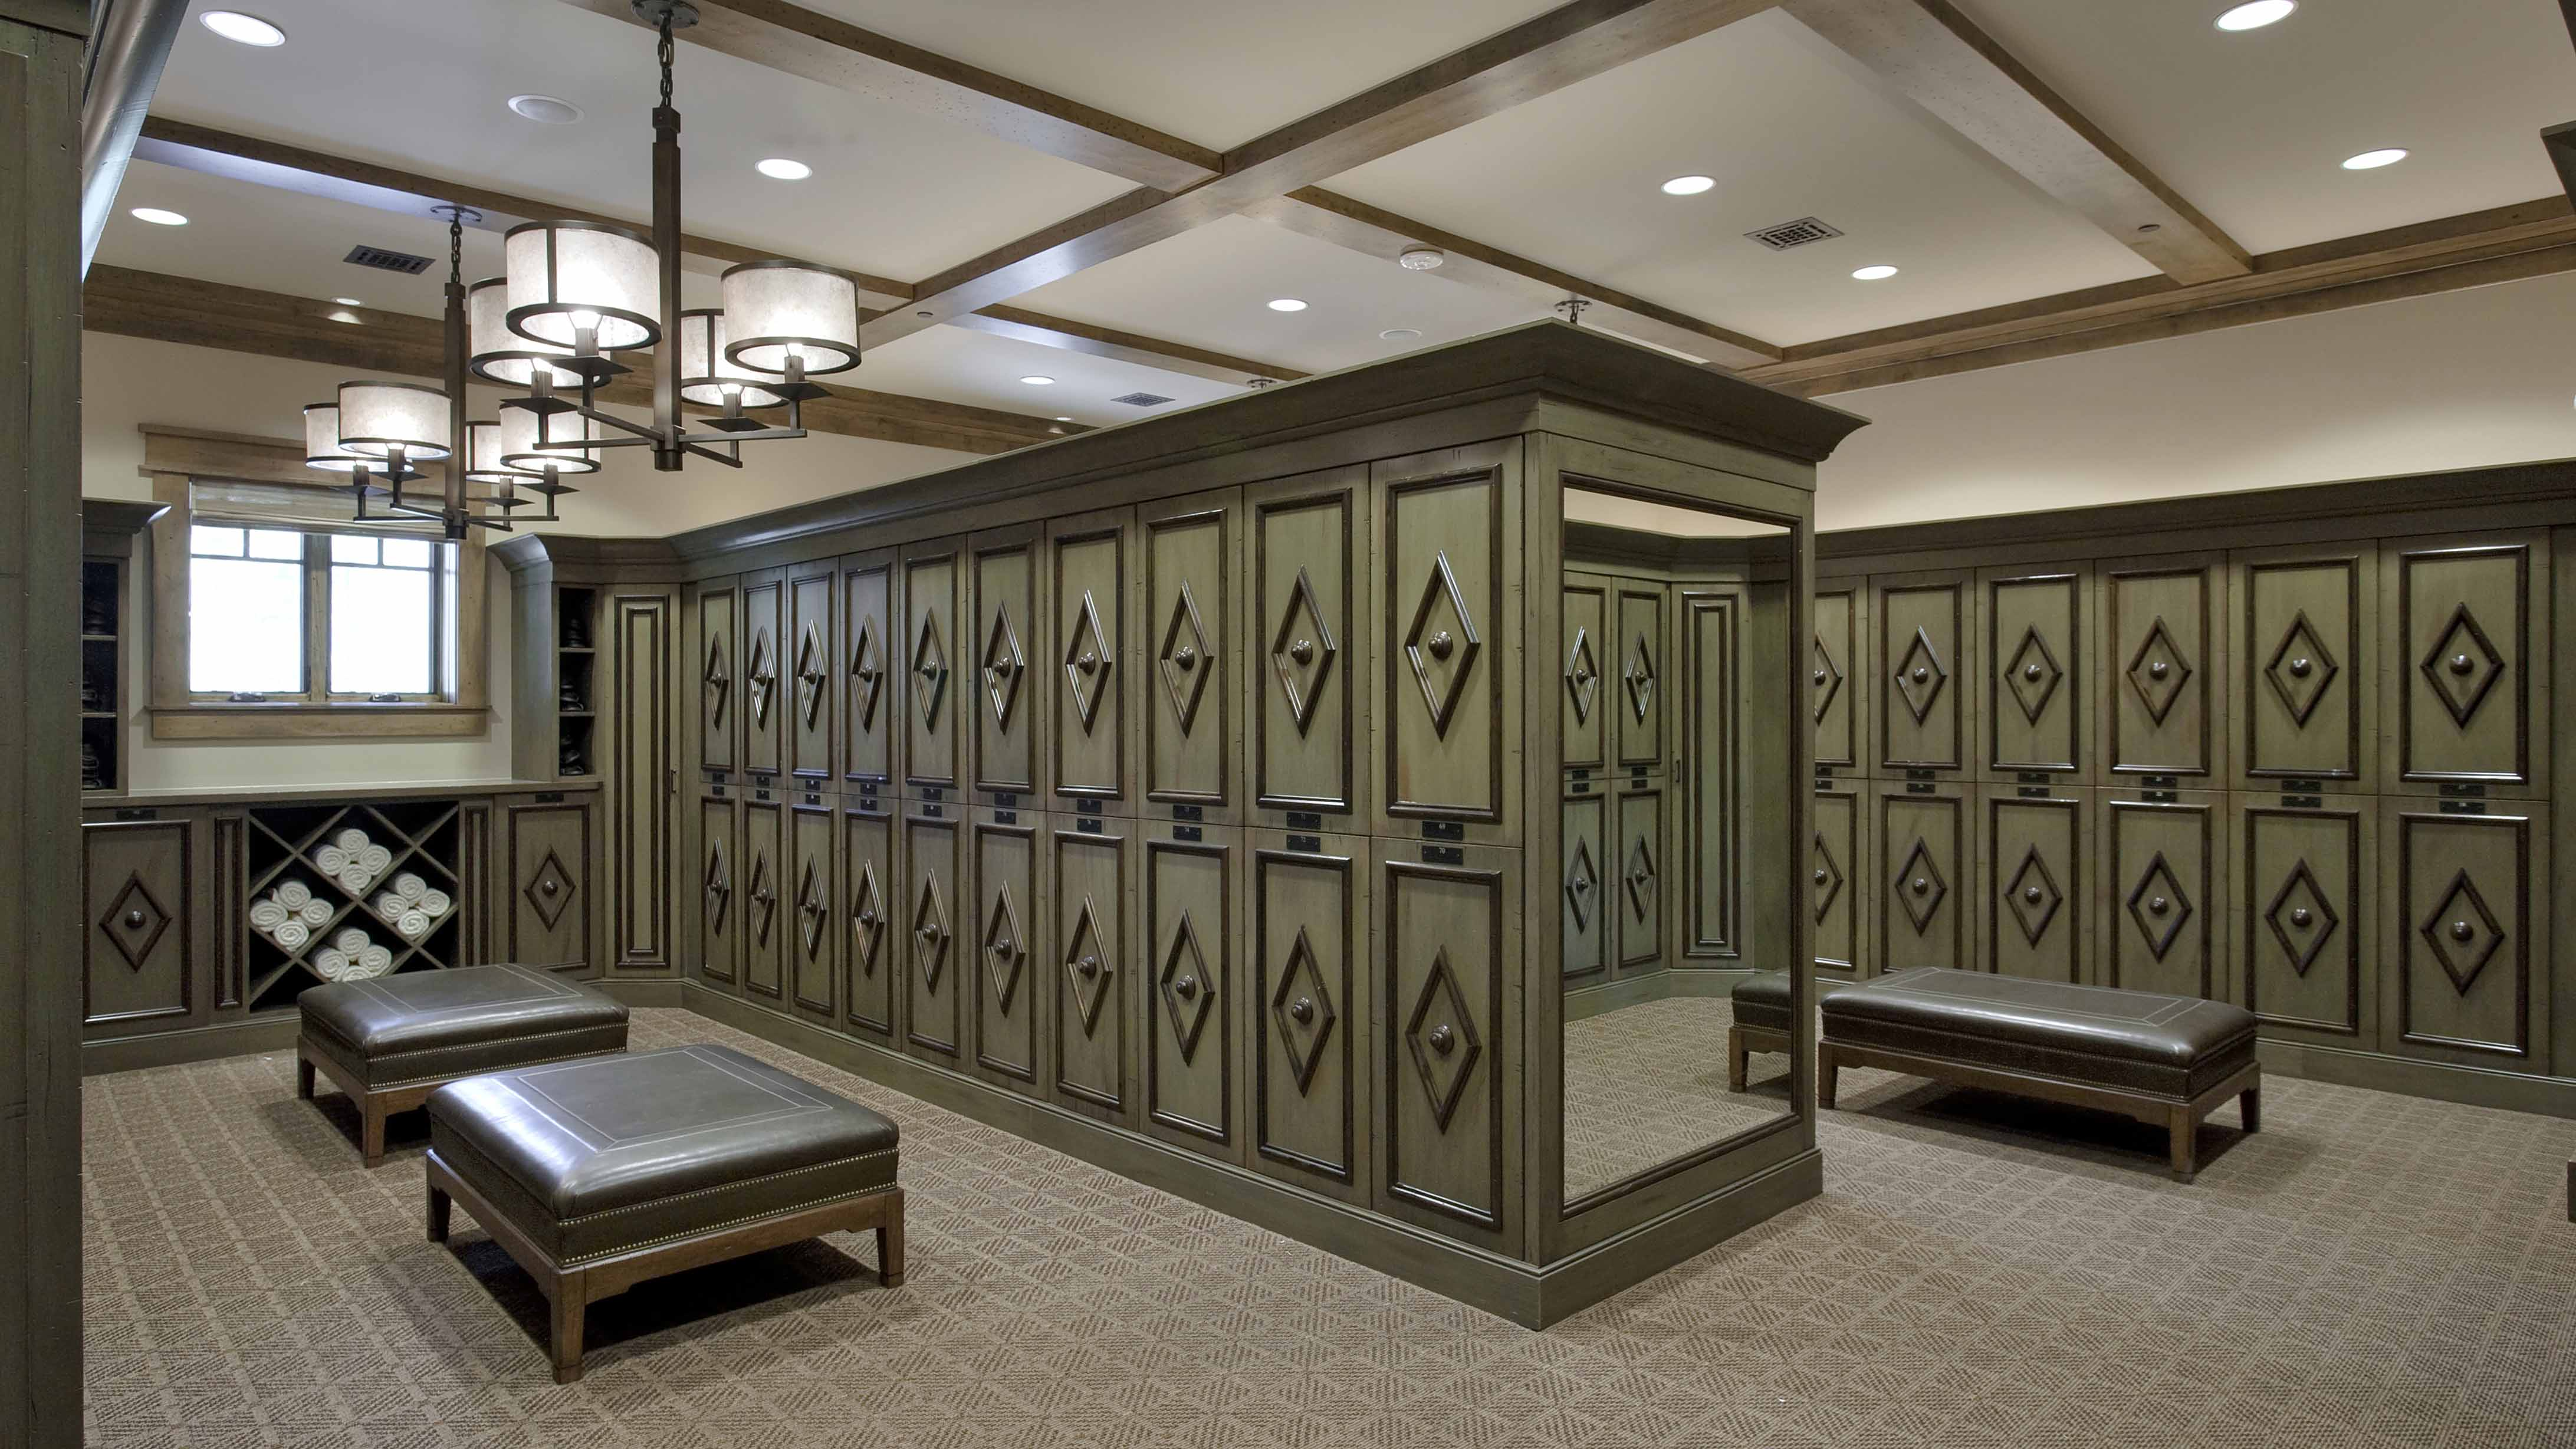 Martis Camp Lodge Golf Clubhouseinteriors Of Locker Room